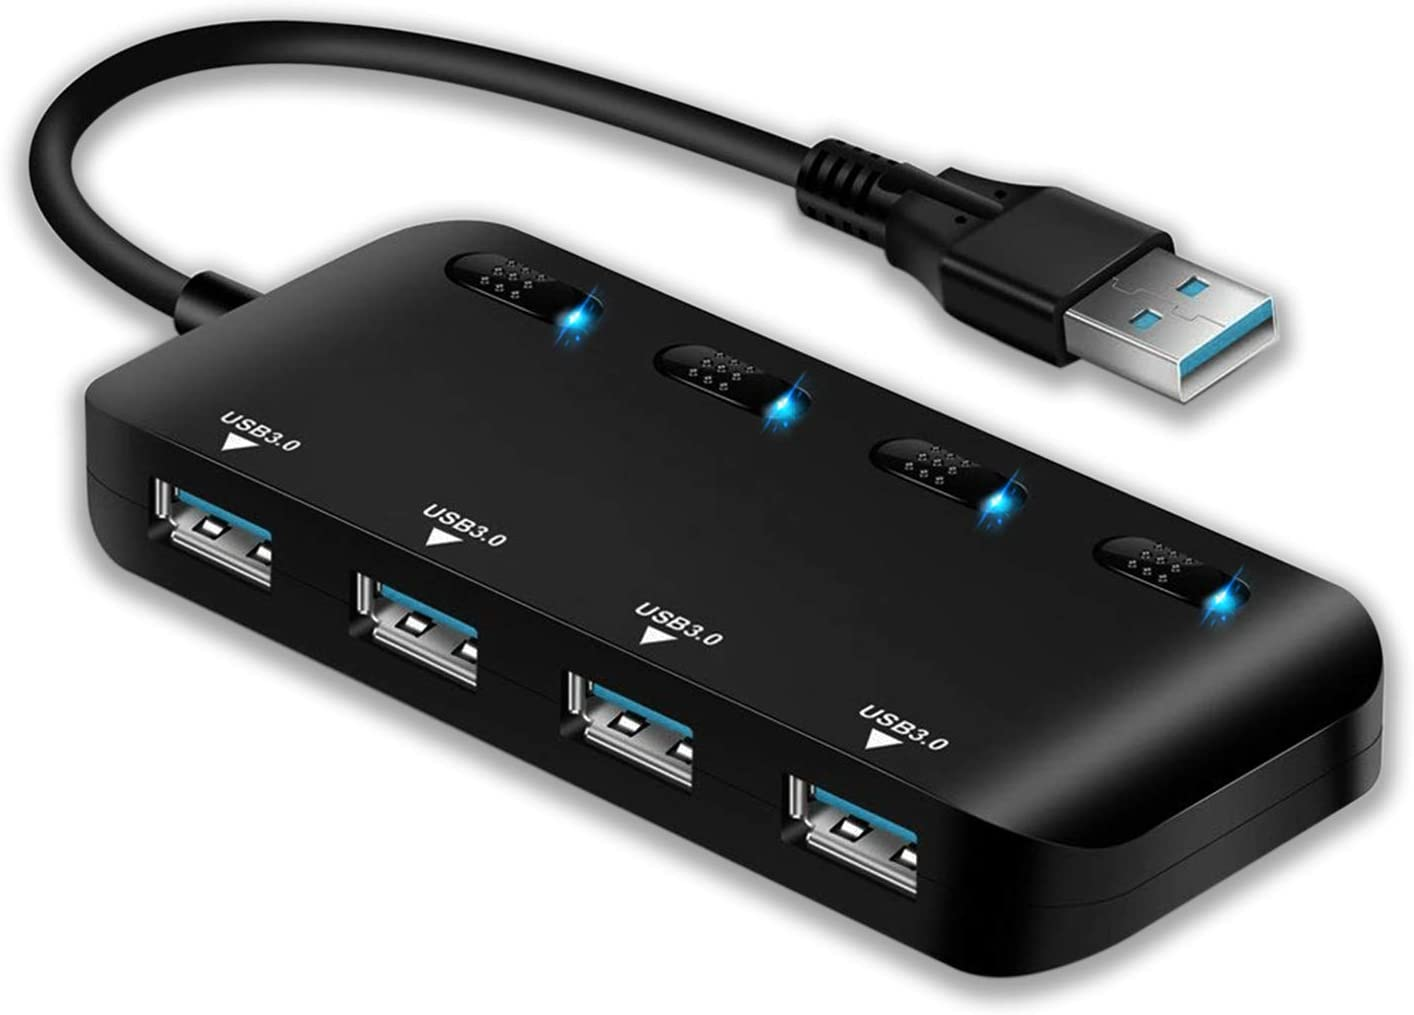 APANAGE 4 Port Powered USB 3.0 Hub Splitter, Ultra Slim USB Data Hub with Individual Power Switches and LEDs, for MacBook Air, Laptop, iMac,PC, USB Flash Drives, Hard Drive (Black)